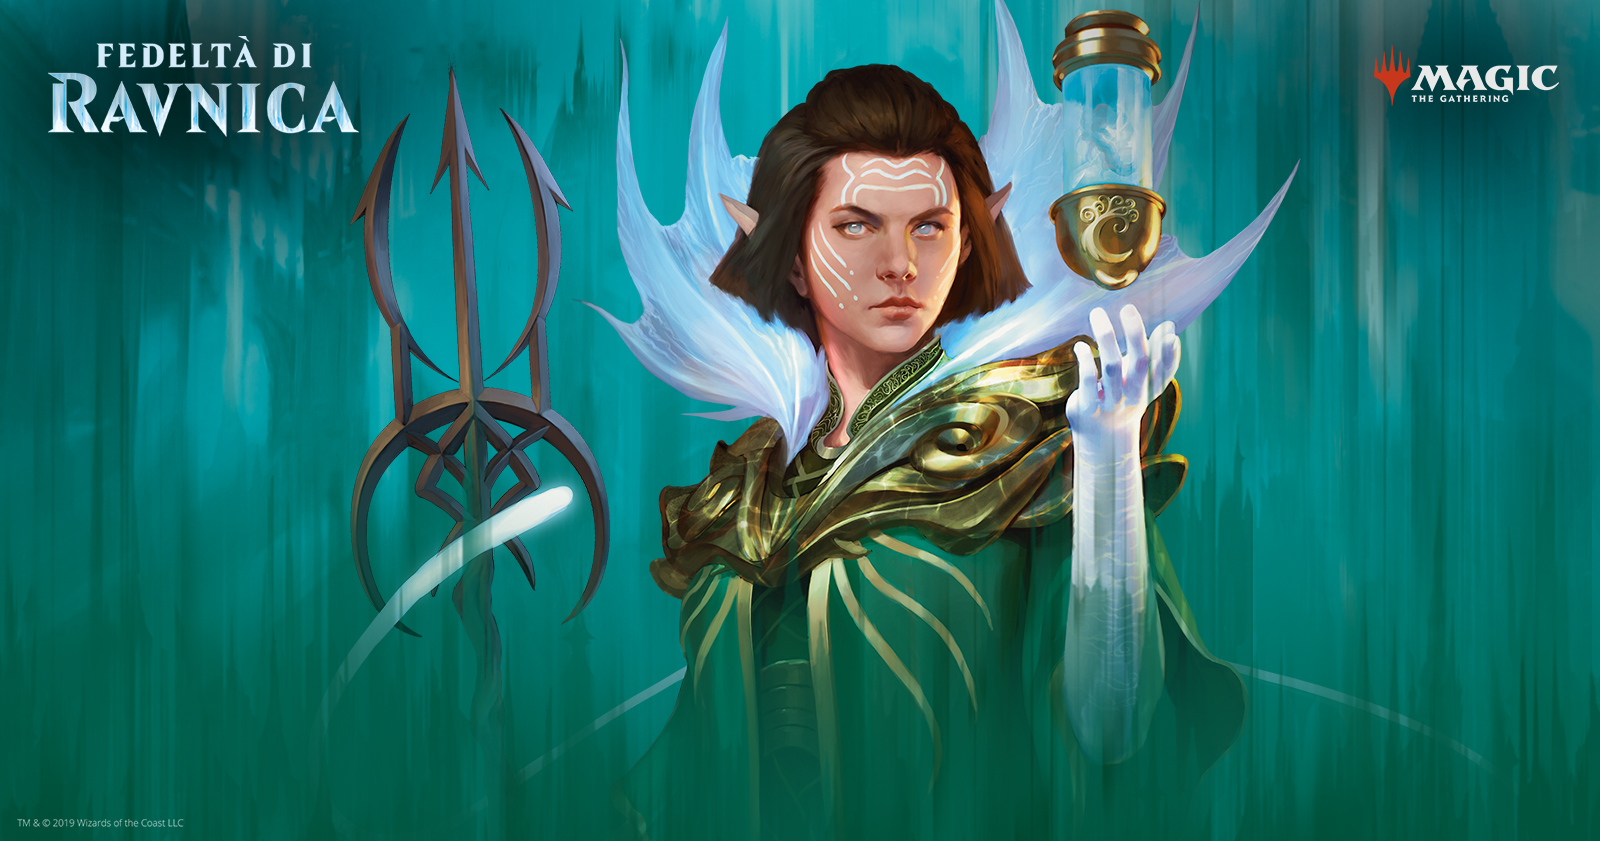 magic fedeltà ravnica simic